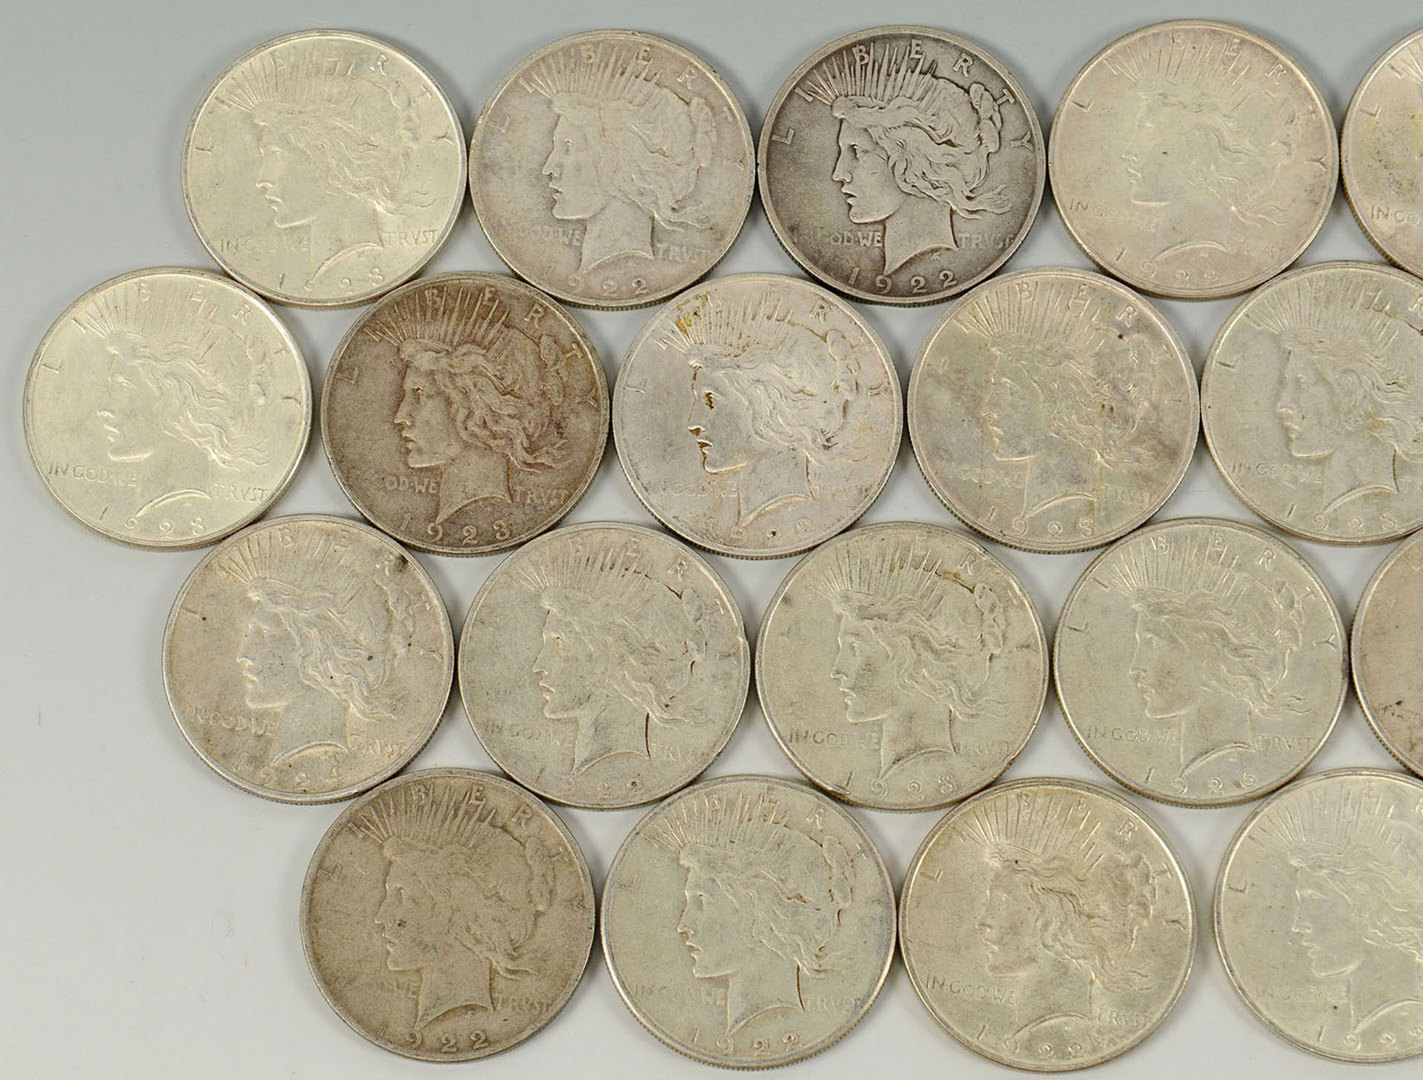 Lot 526: Grouping of 28 Peace Silver Dollars